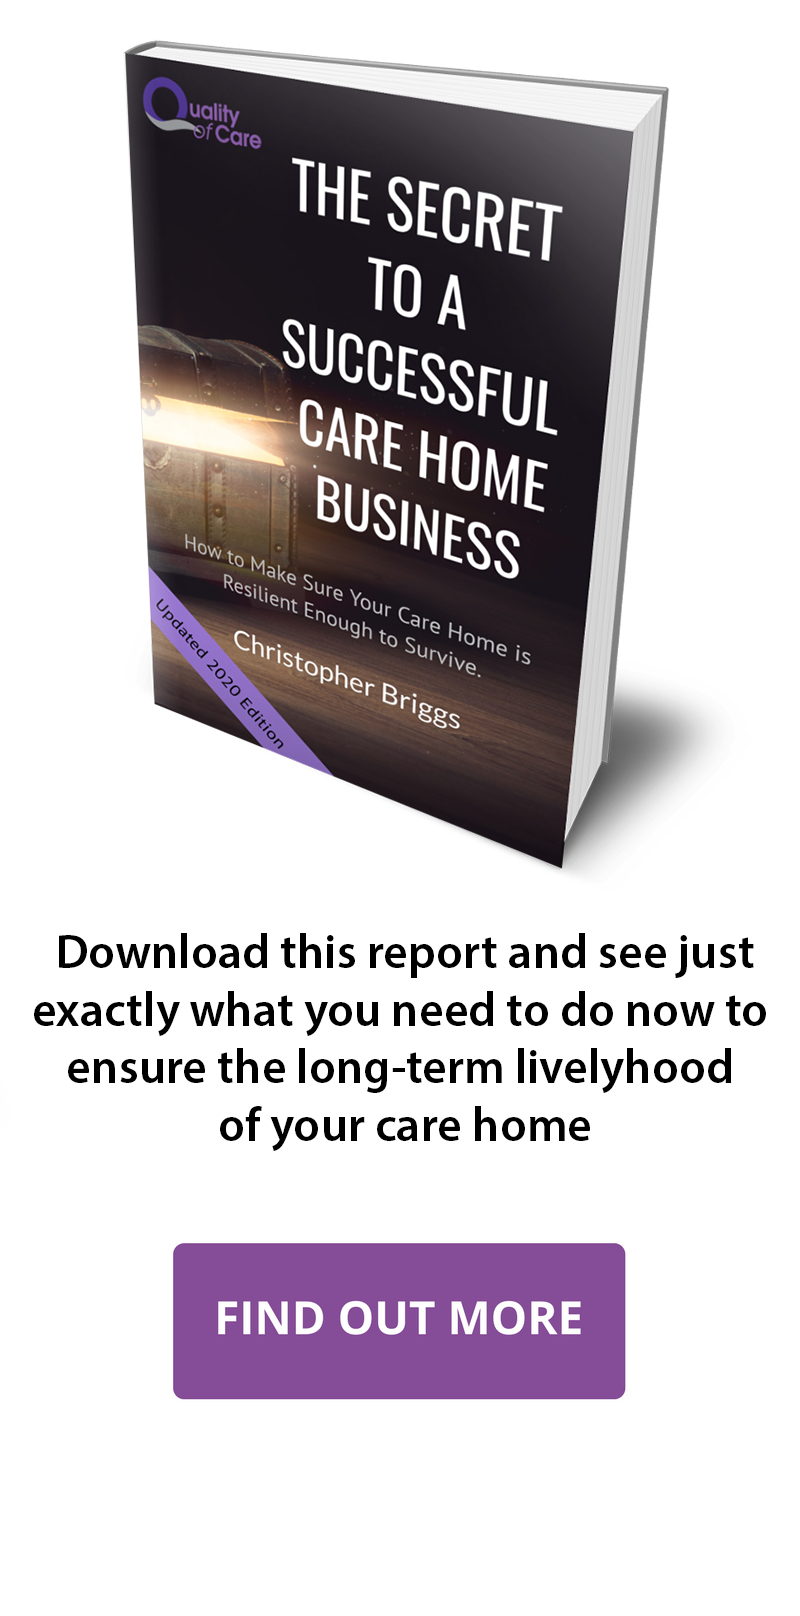 The Secret to a successful care home business